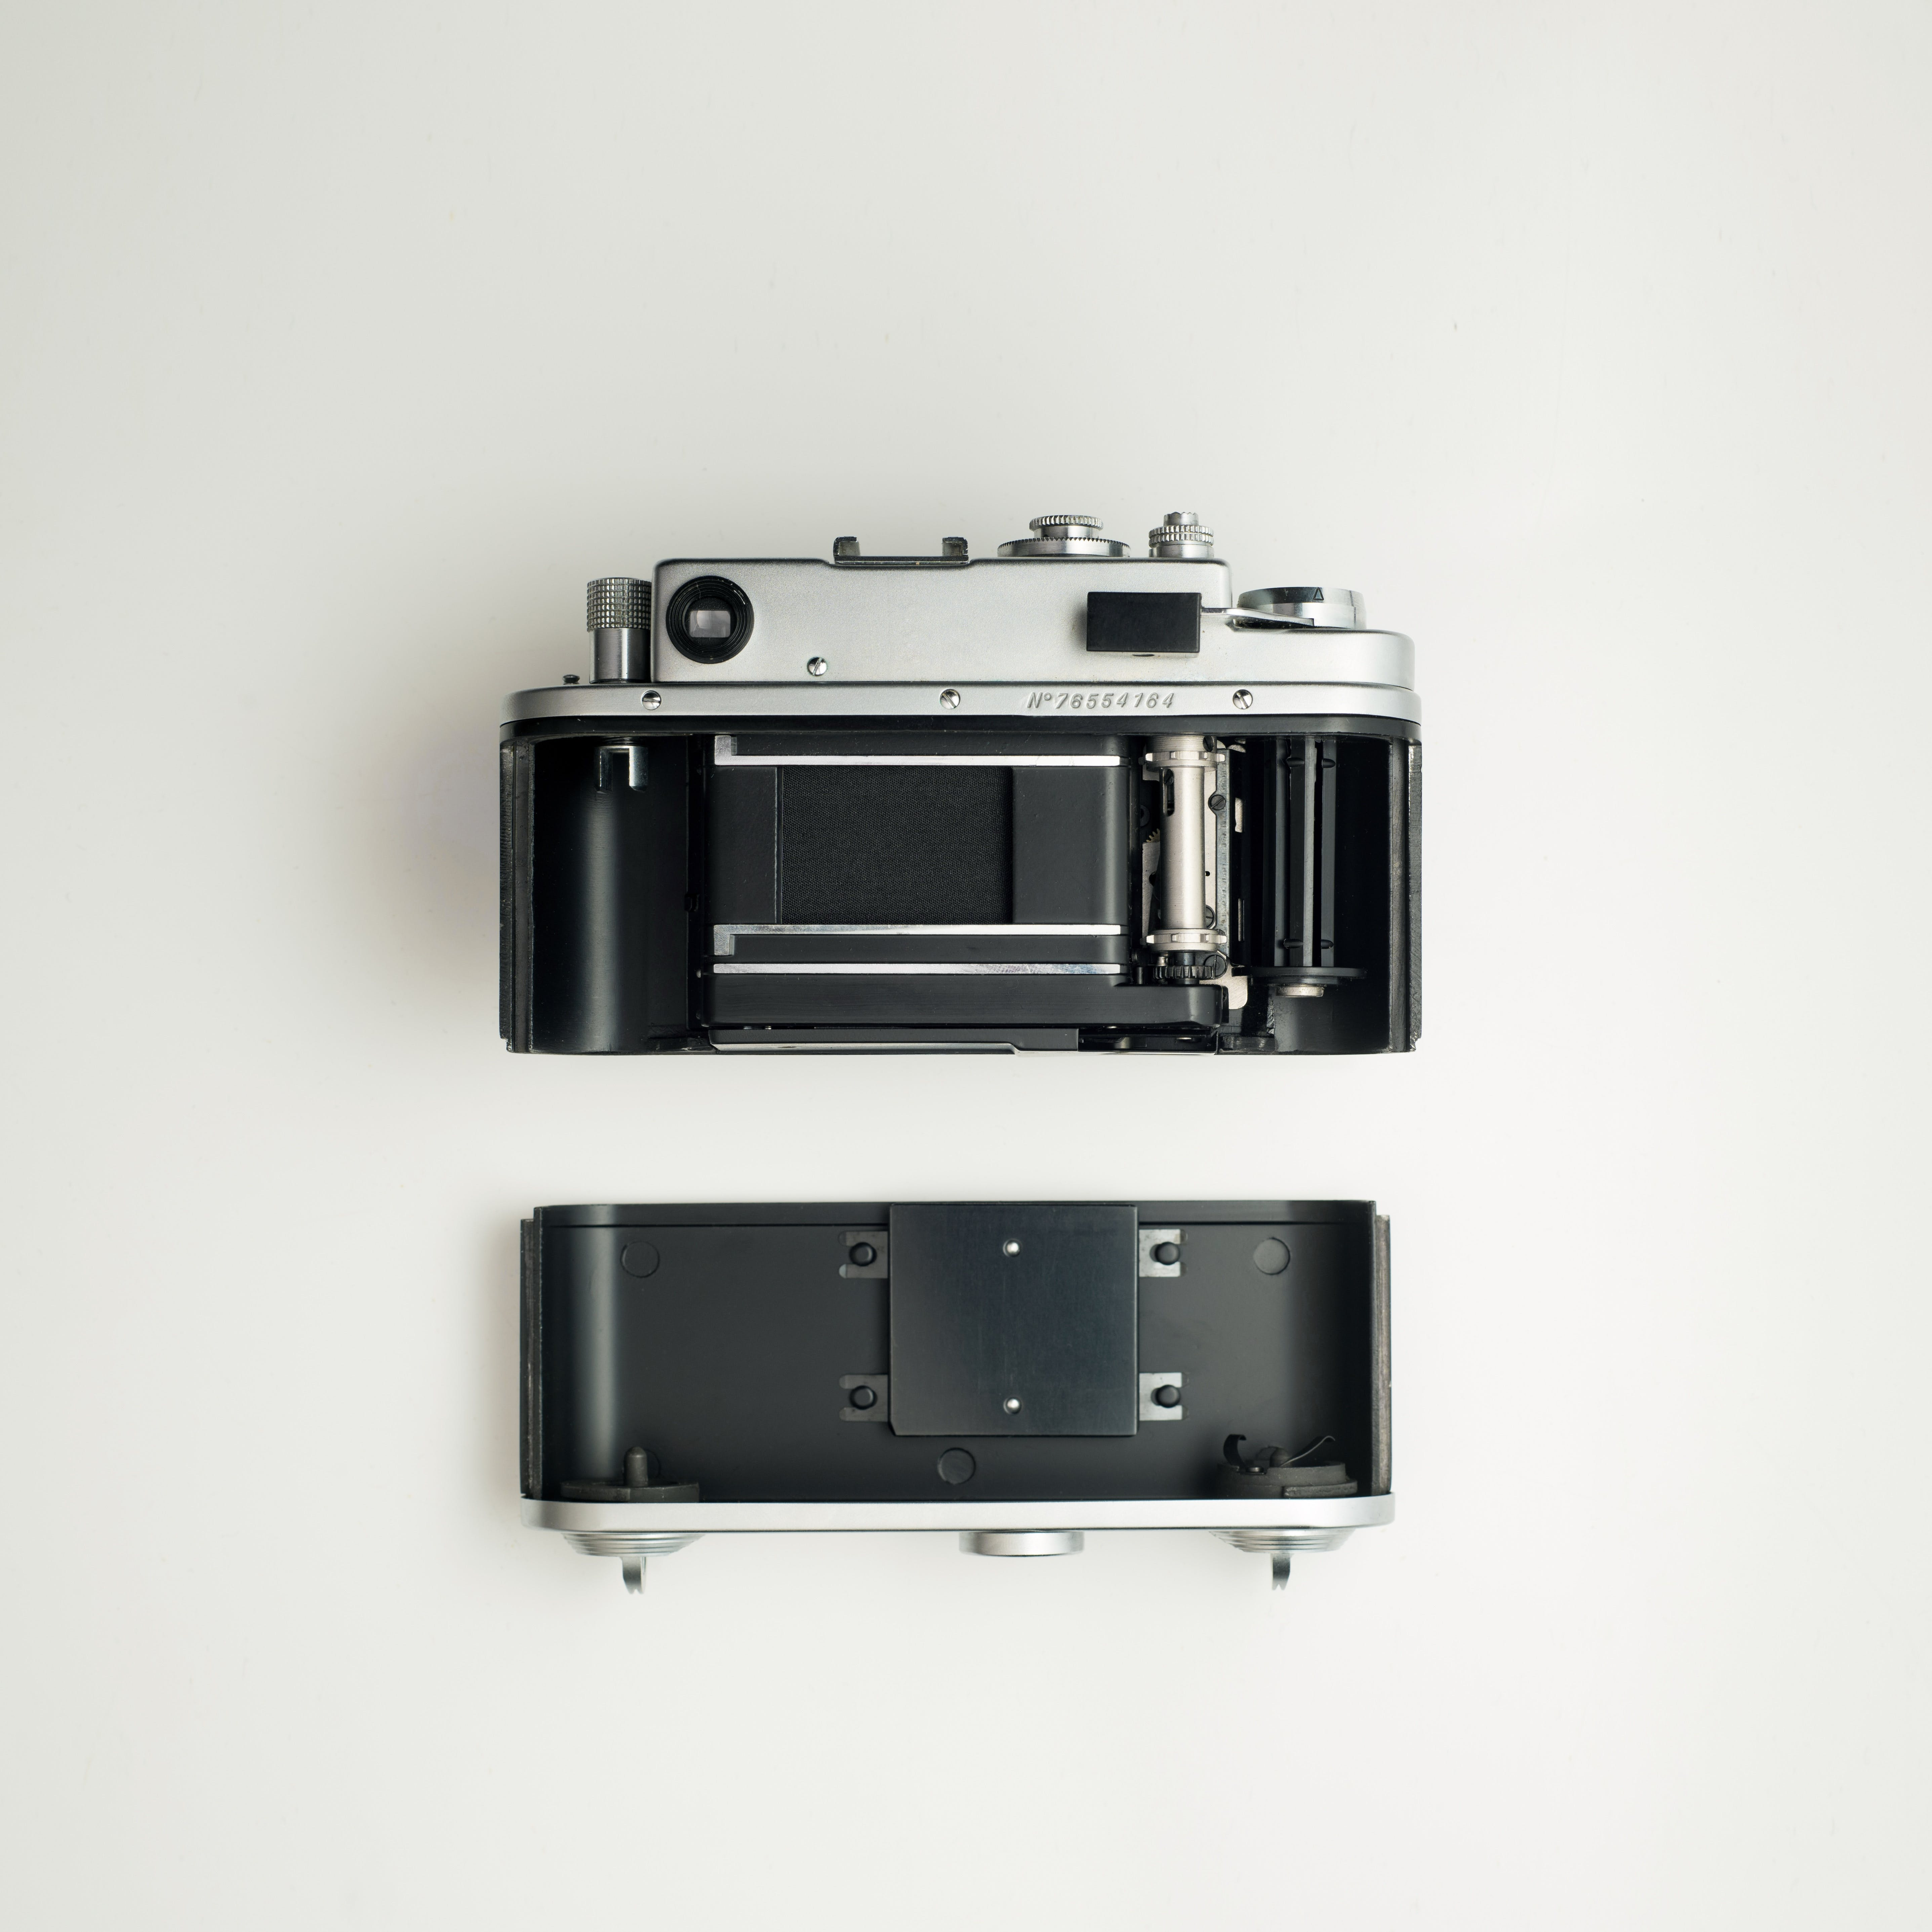 Black And Grey Camera On White Surface